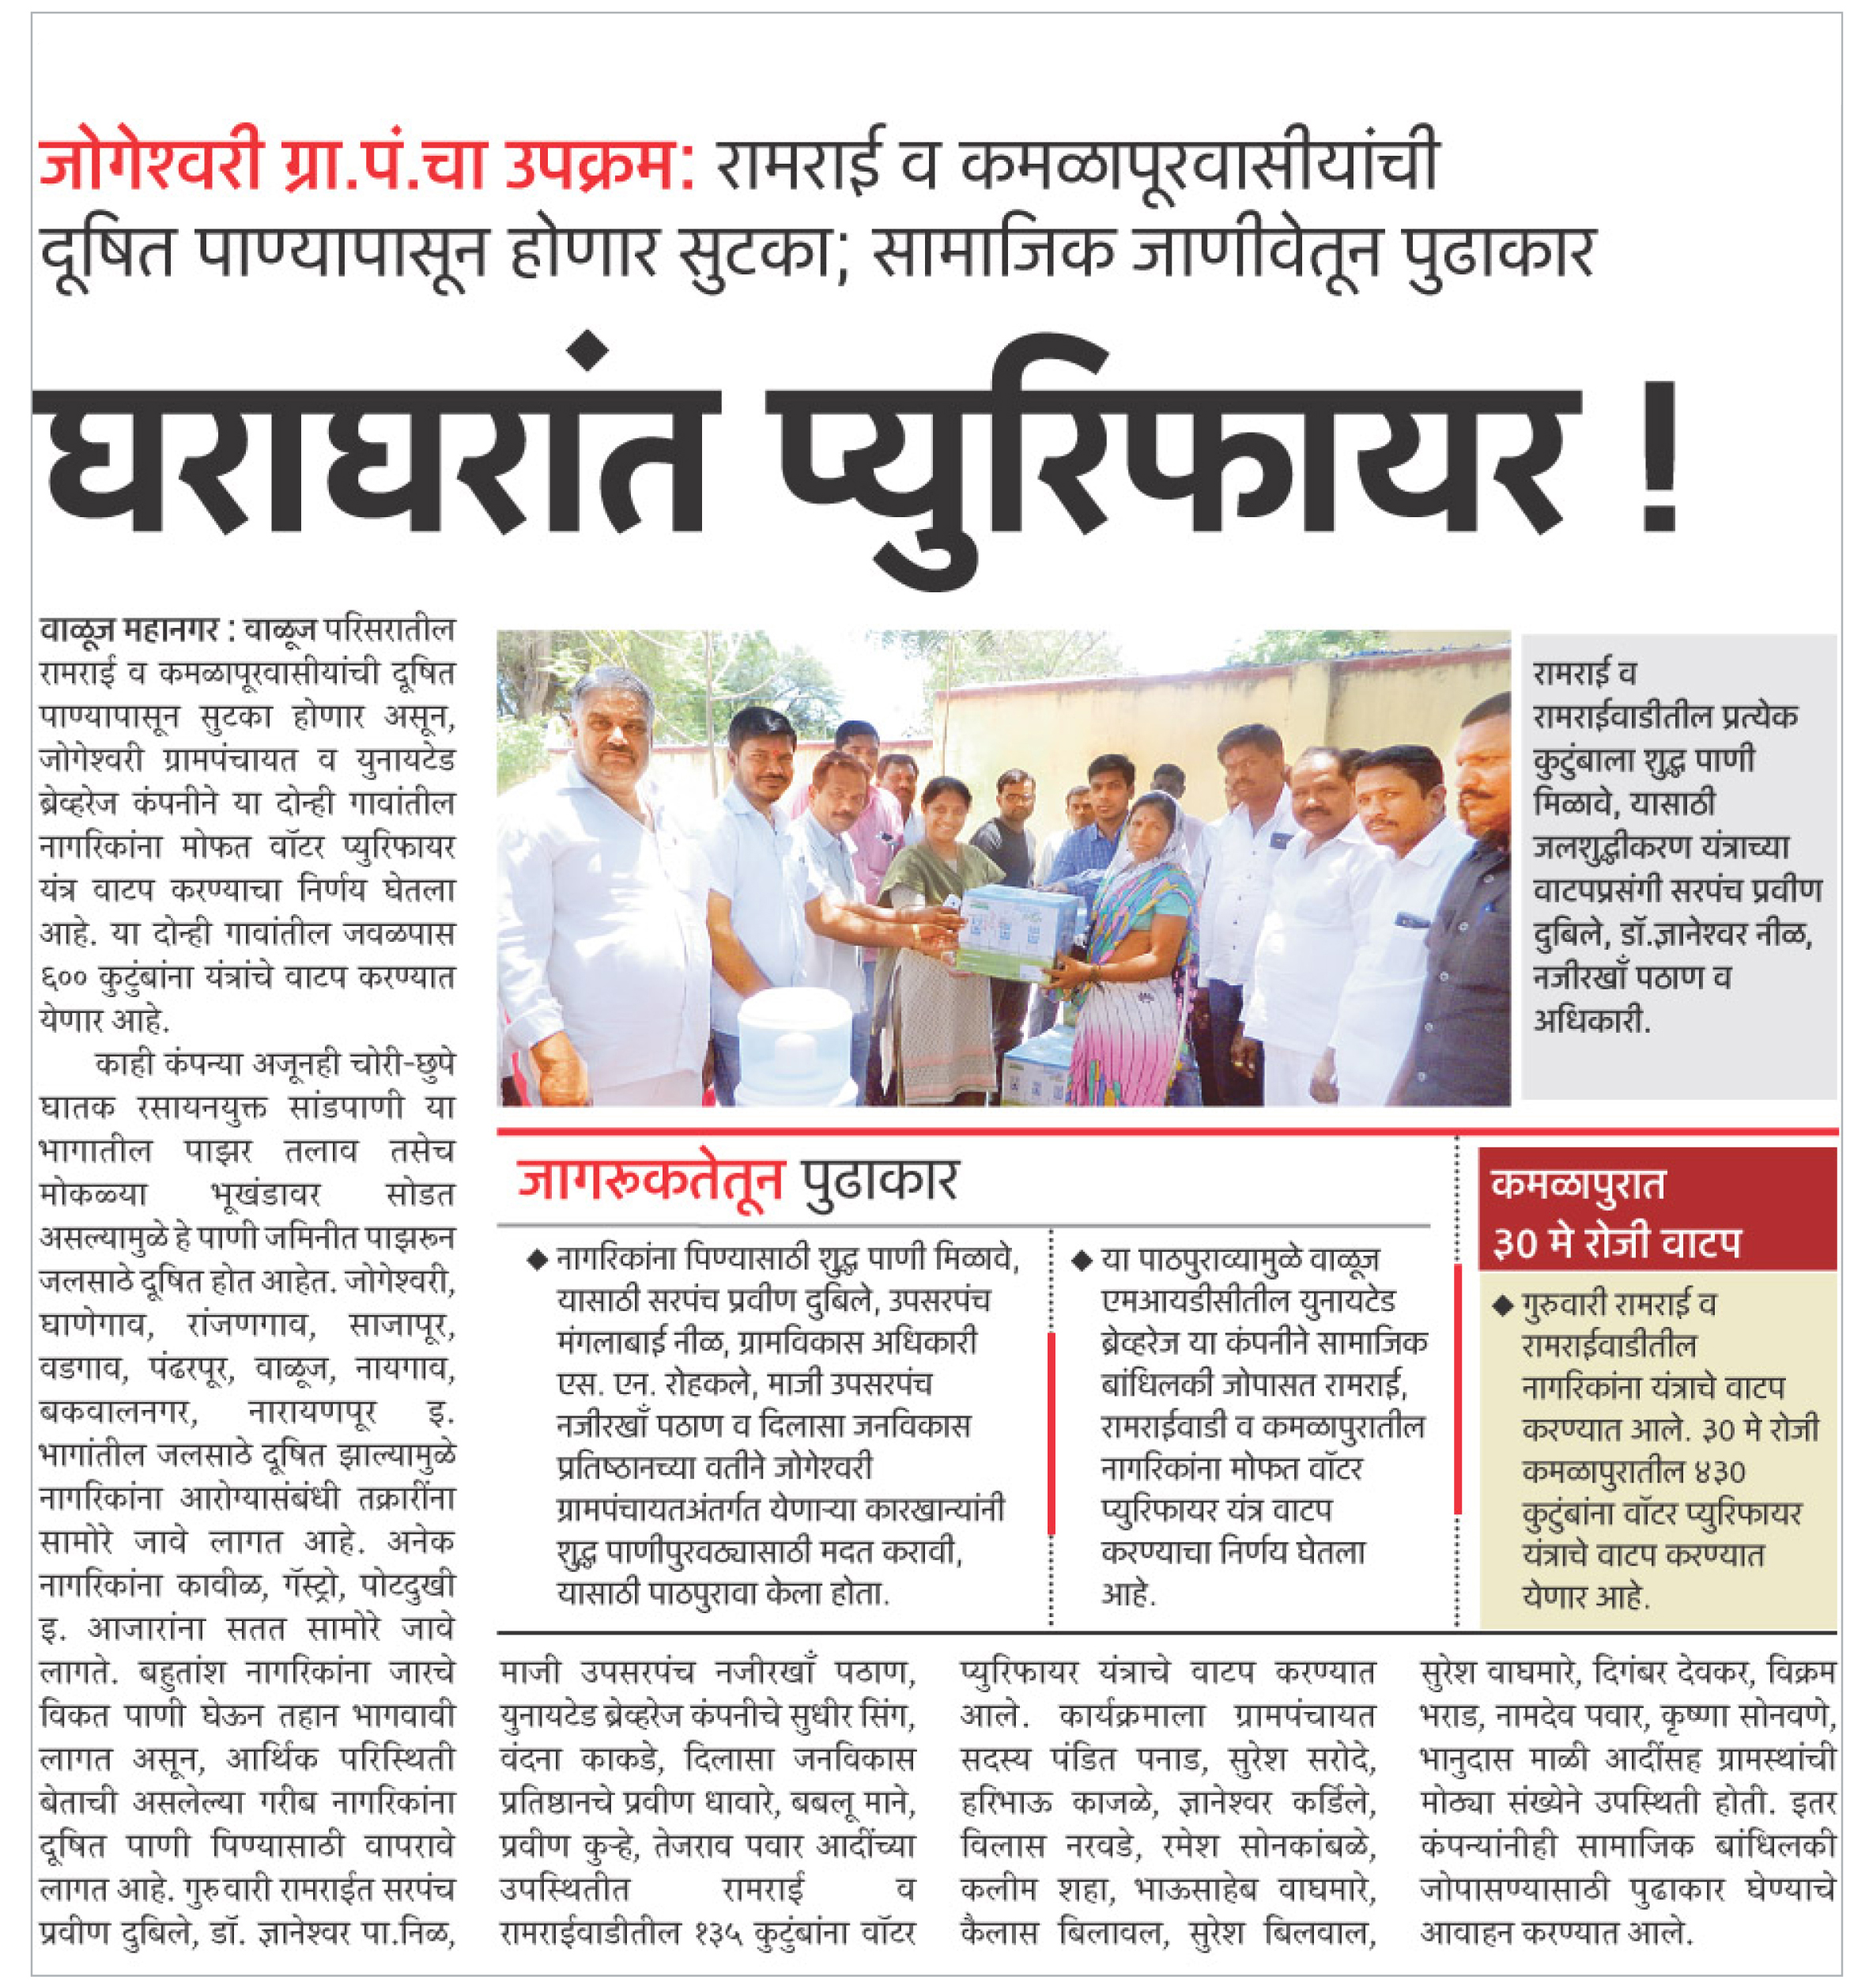 Lokmat news clipping 27.5.16.jpg